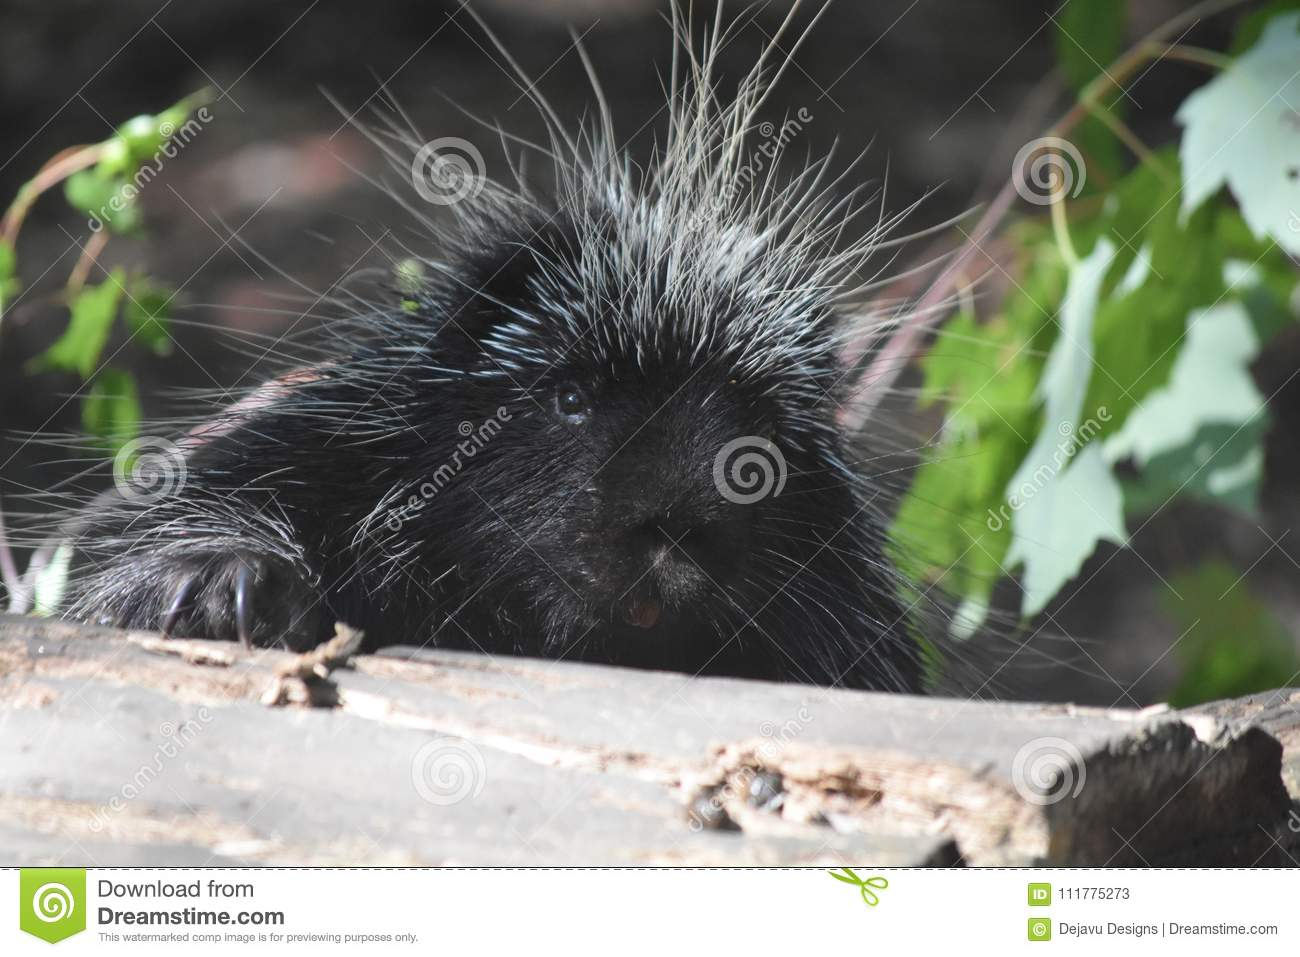 Adorable wild porcupine popping up from behind a log